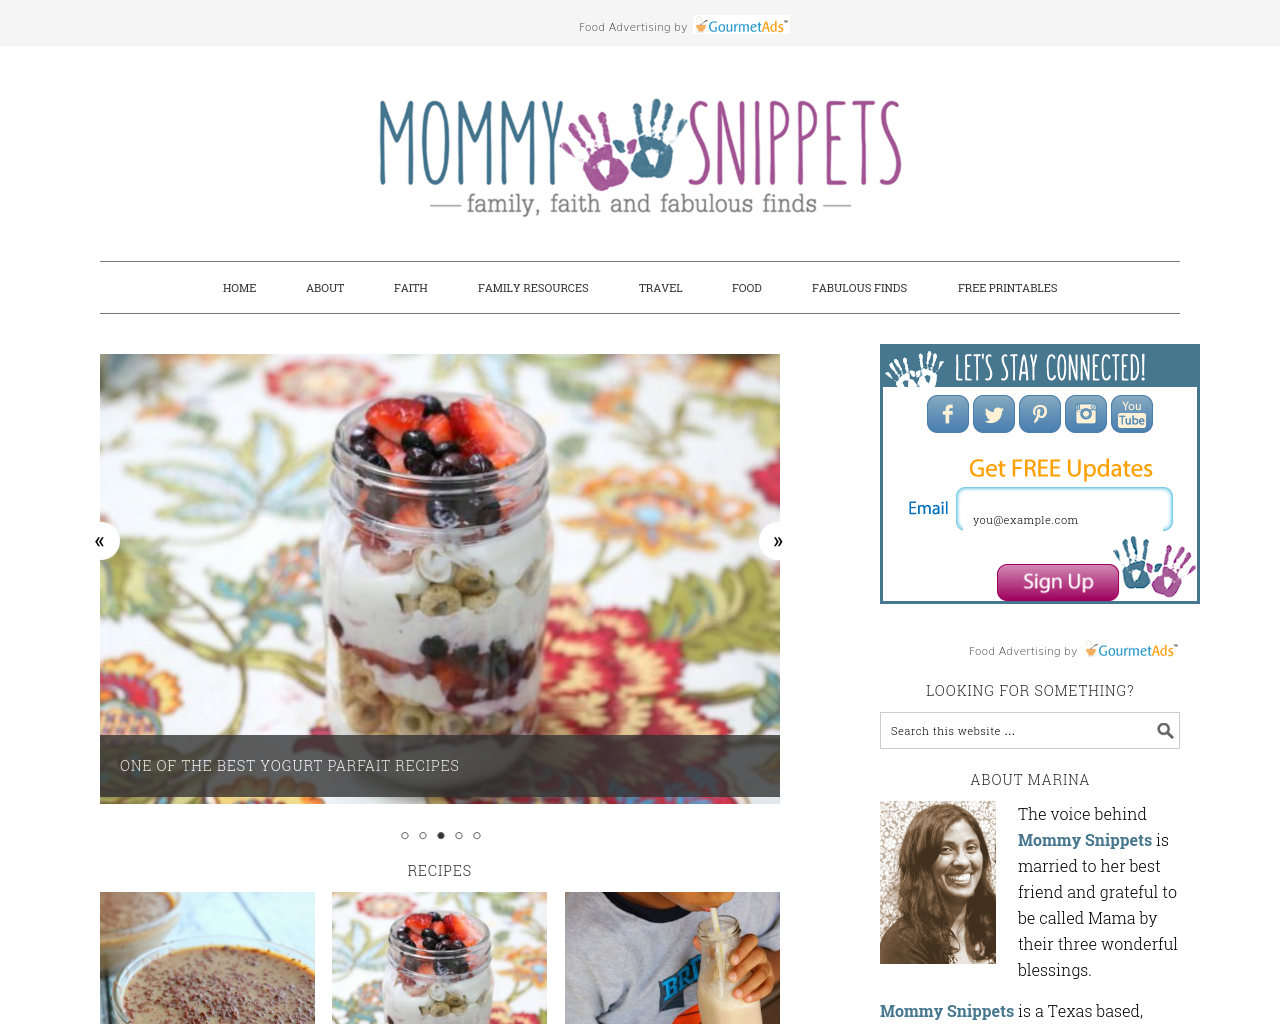 MOMMY-SNIPPETS-Advertising-Reviews-Pricing